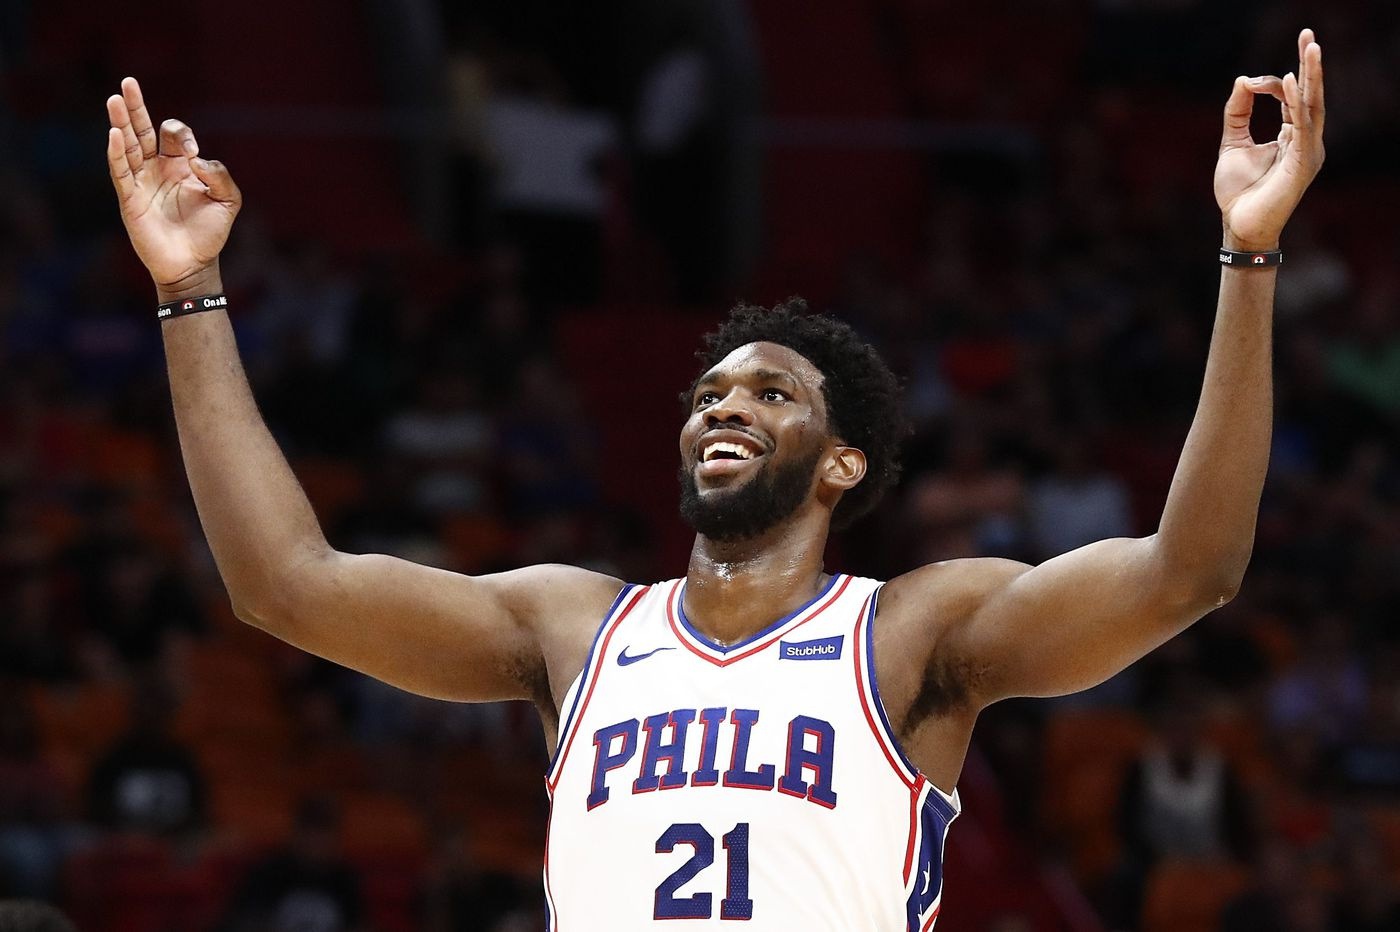 When the Sixers' Joel Embiid doesn't score 35 points, he says, 'I feel like it's a bad game'